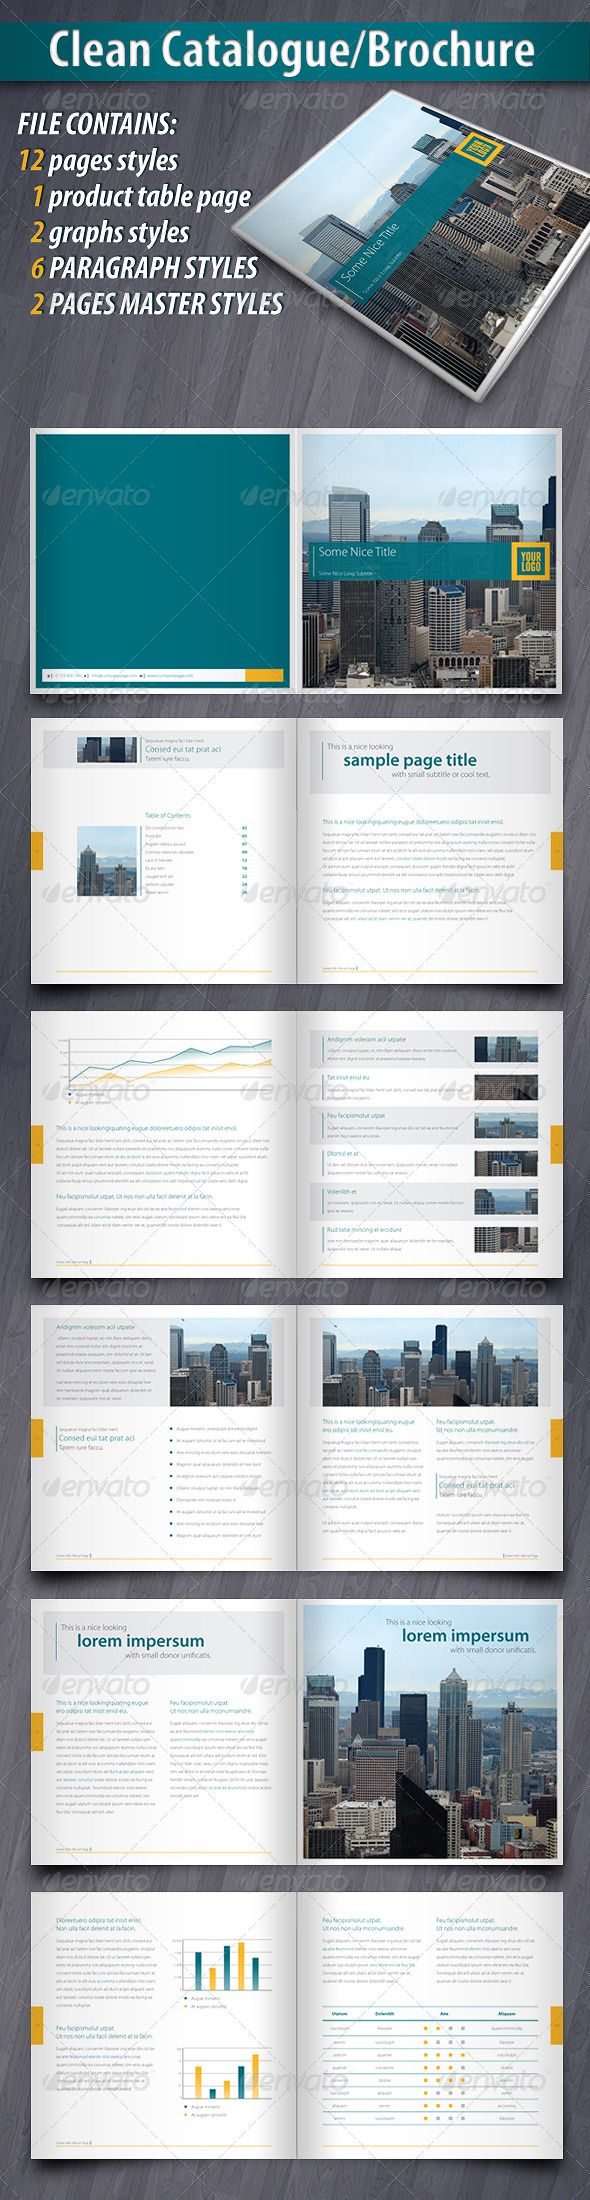 Clean Catalogue/Brochure - GraphicRiver Item for Sale